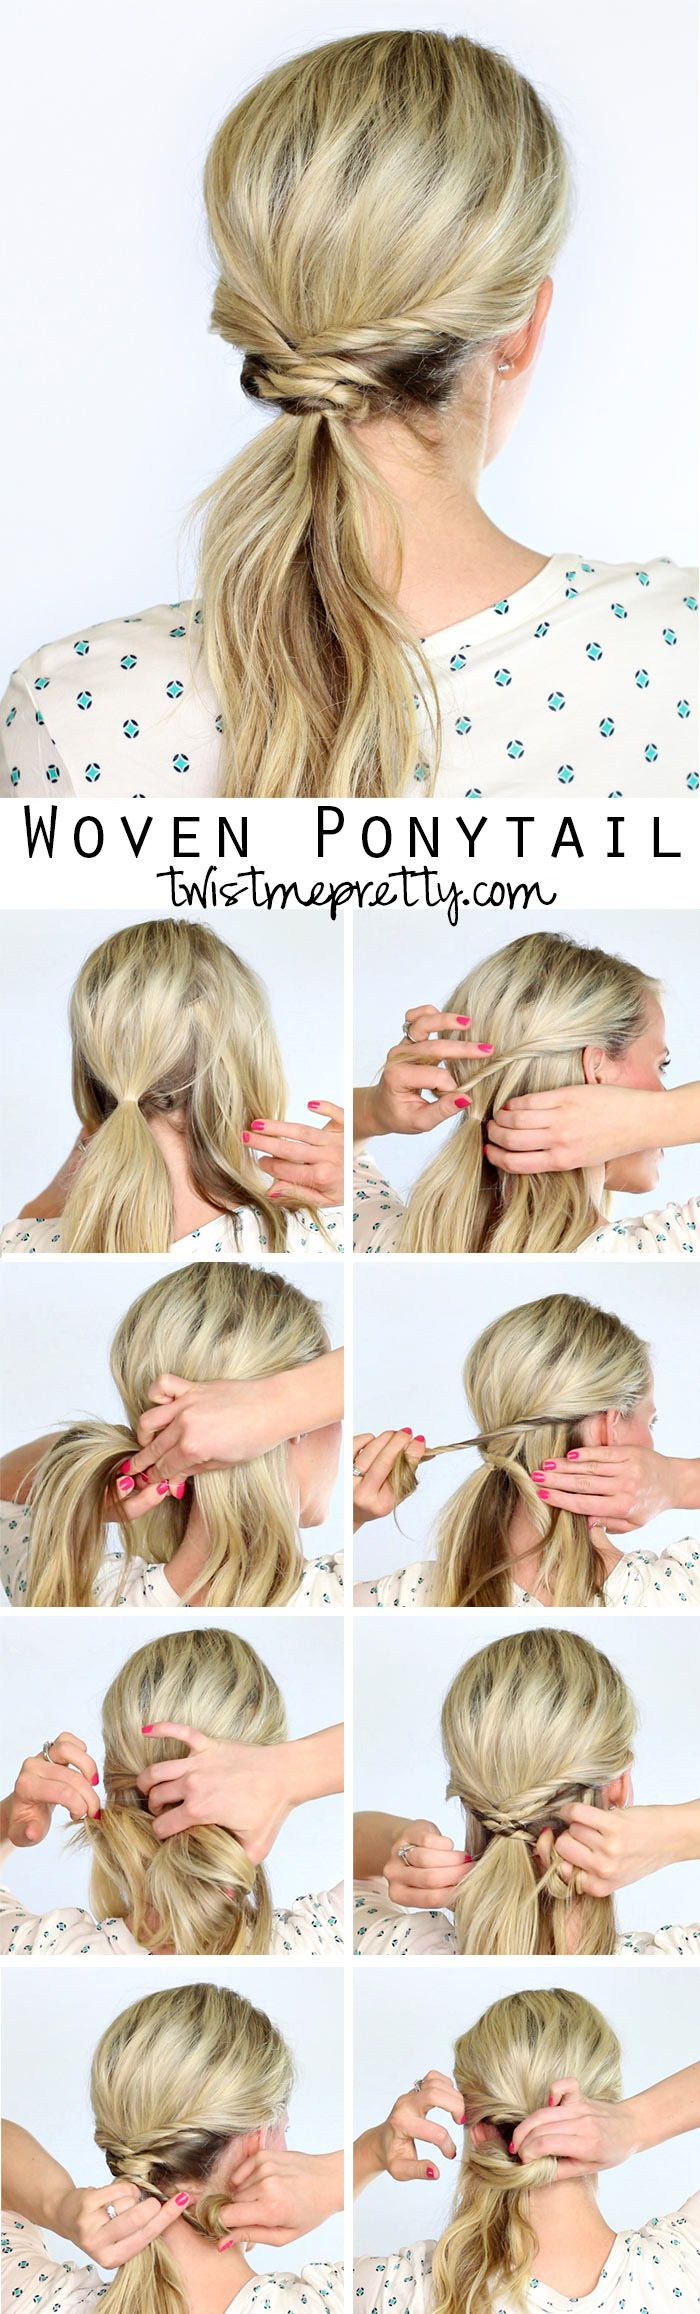 You'll need a few clear elastics and three minutes max to pull this beautiful woven ponytail together.  Come watch the DIY tutorial at Twist Me Pretty